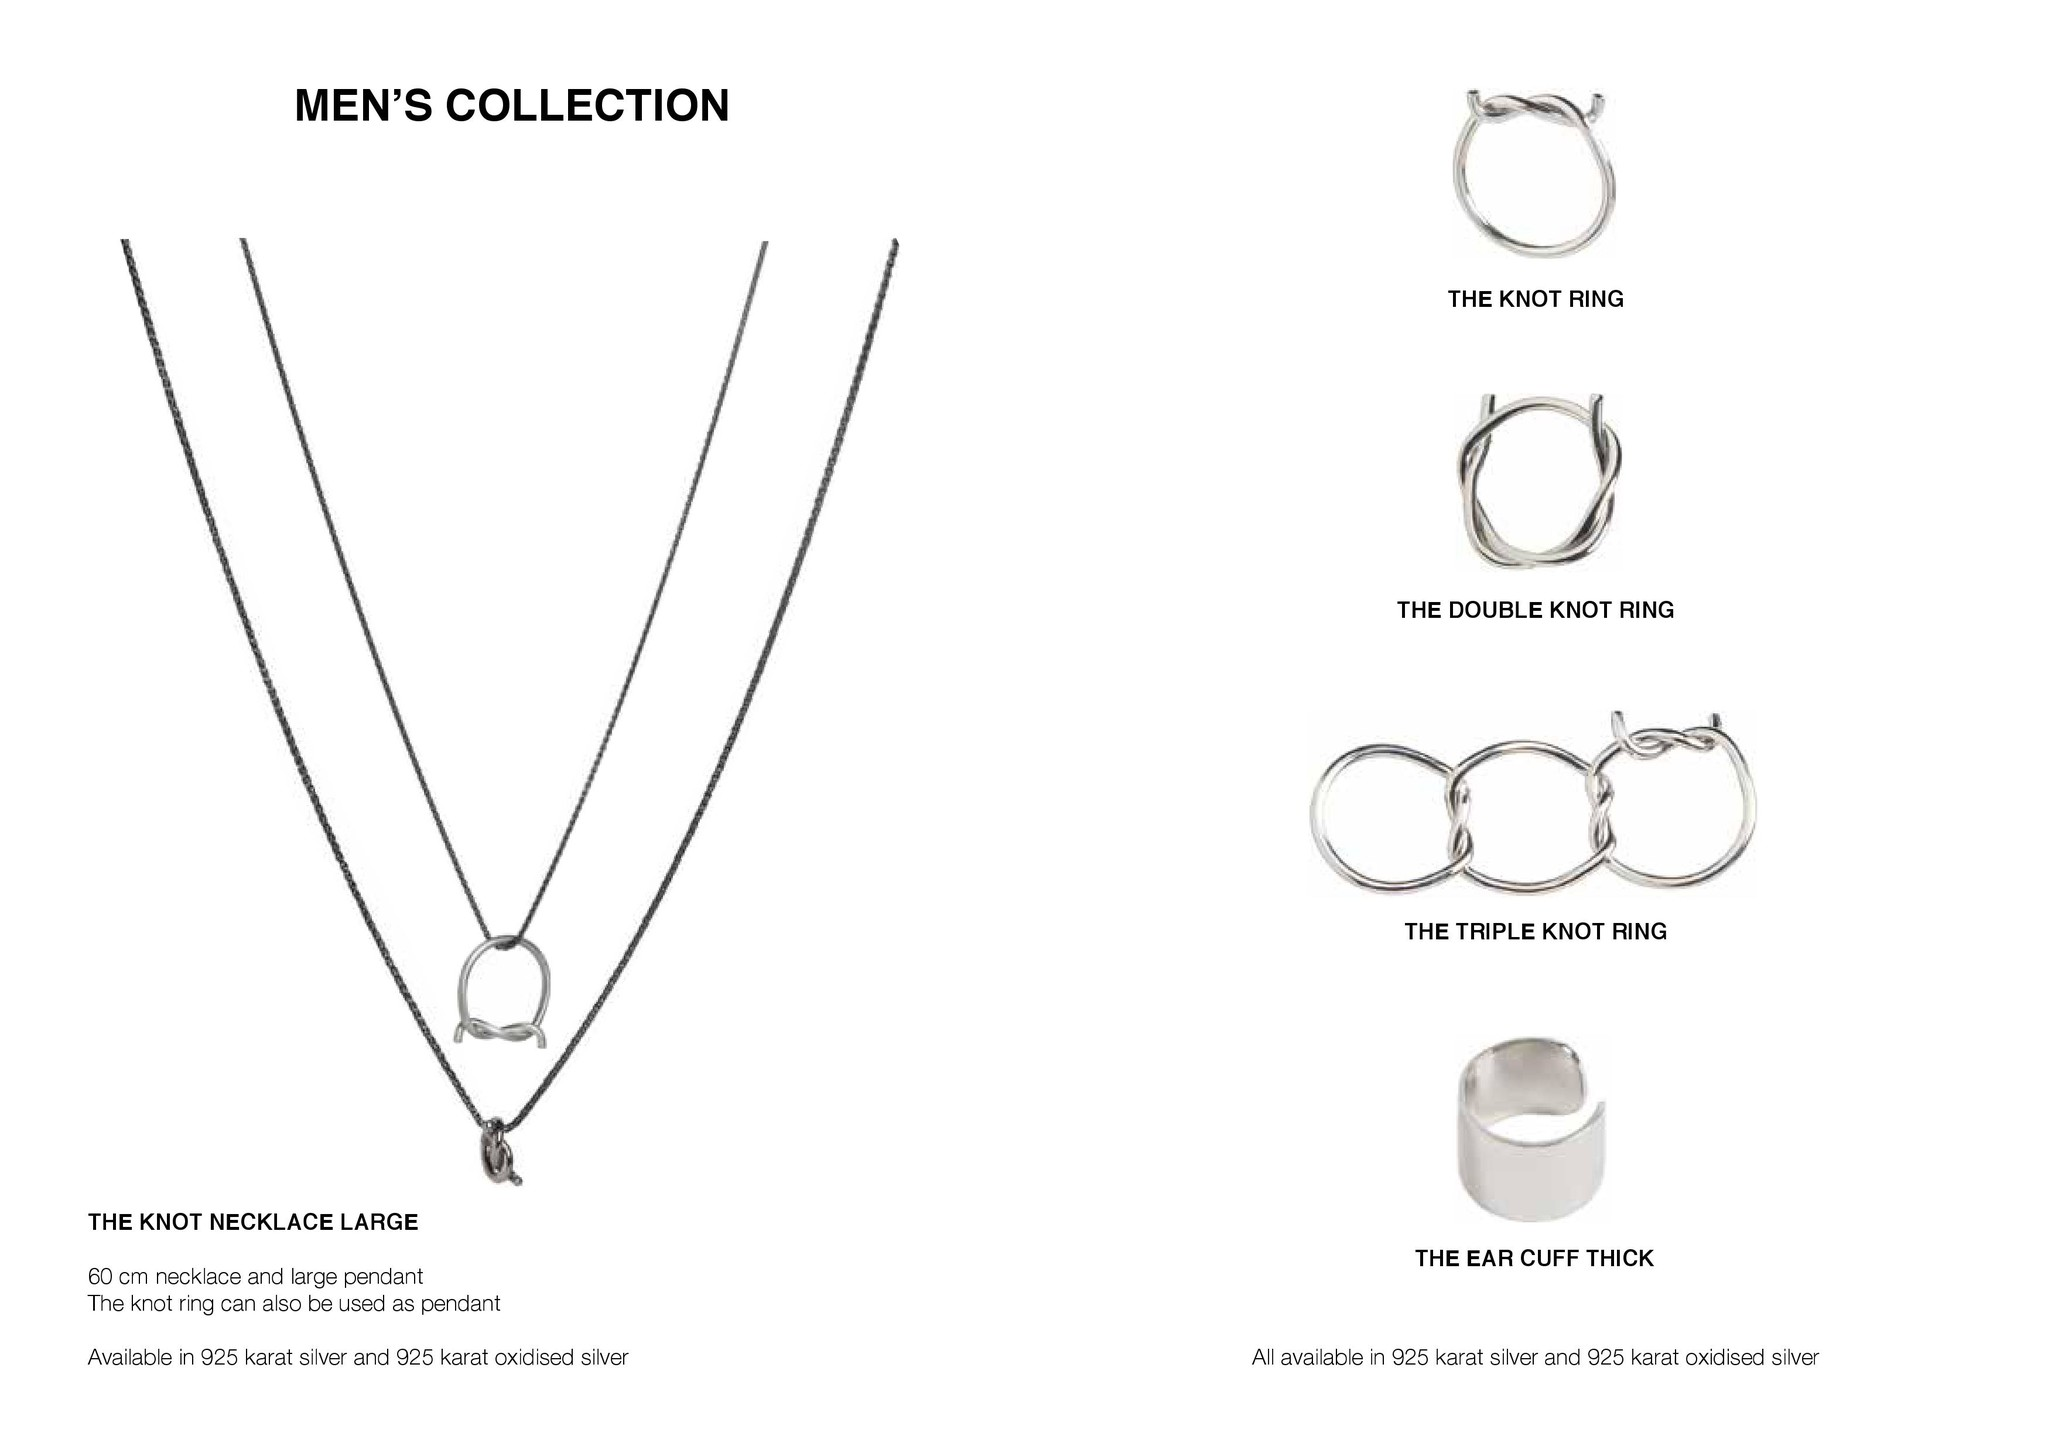 Jewellery for men